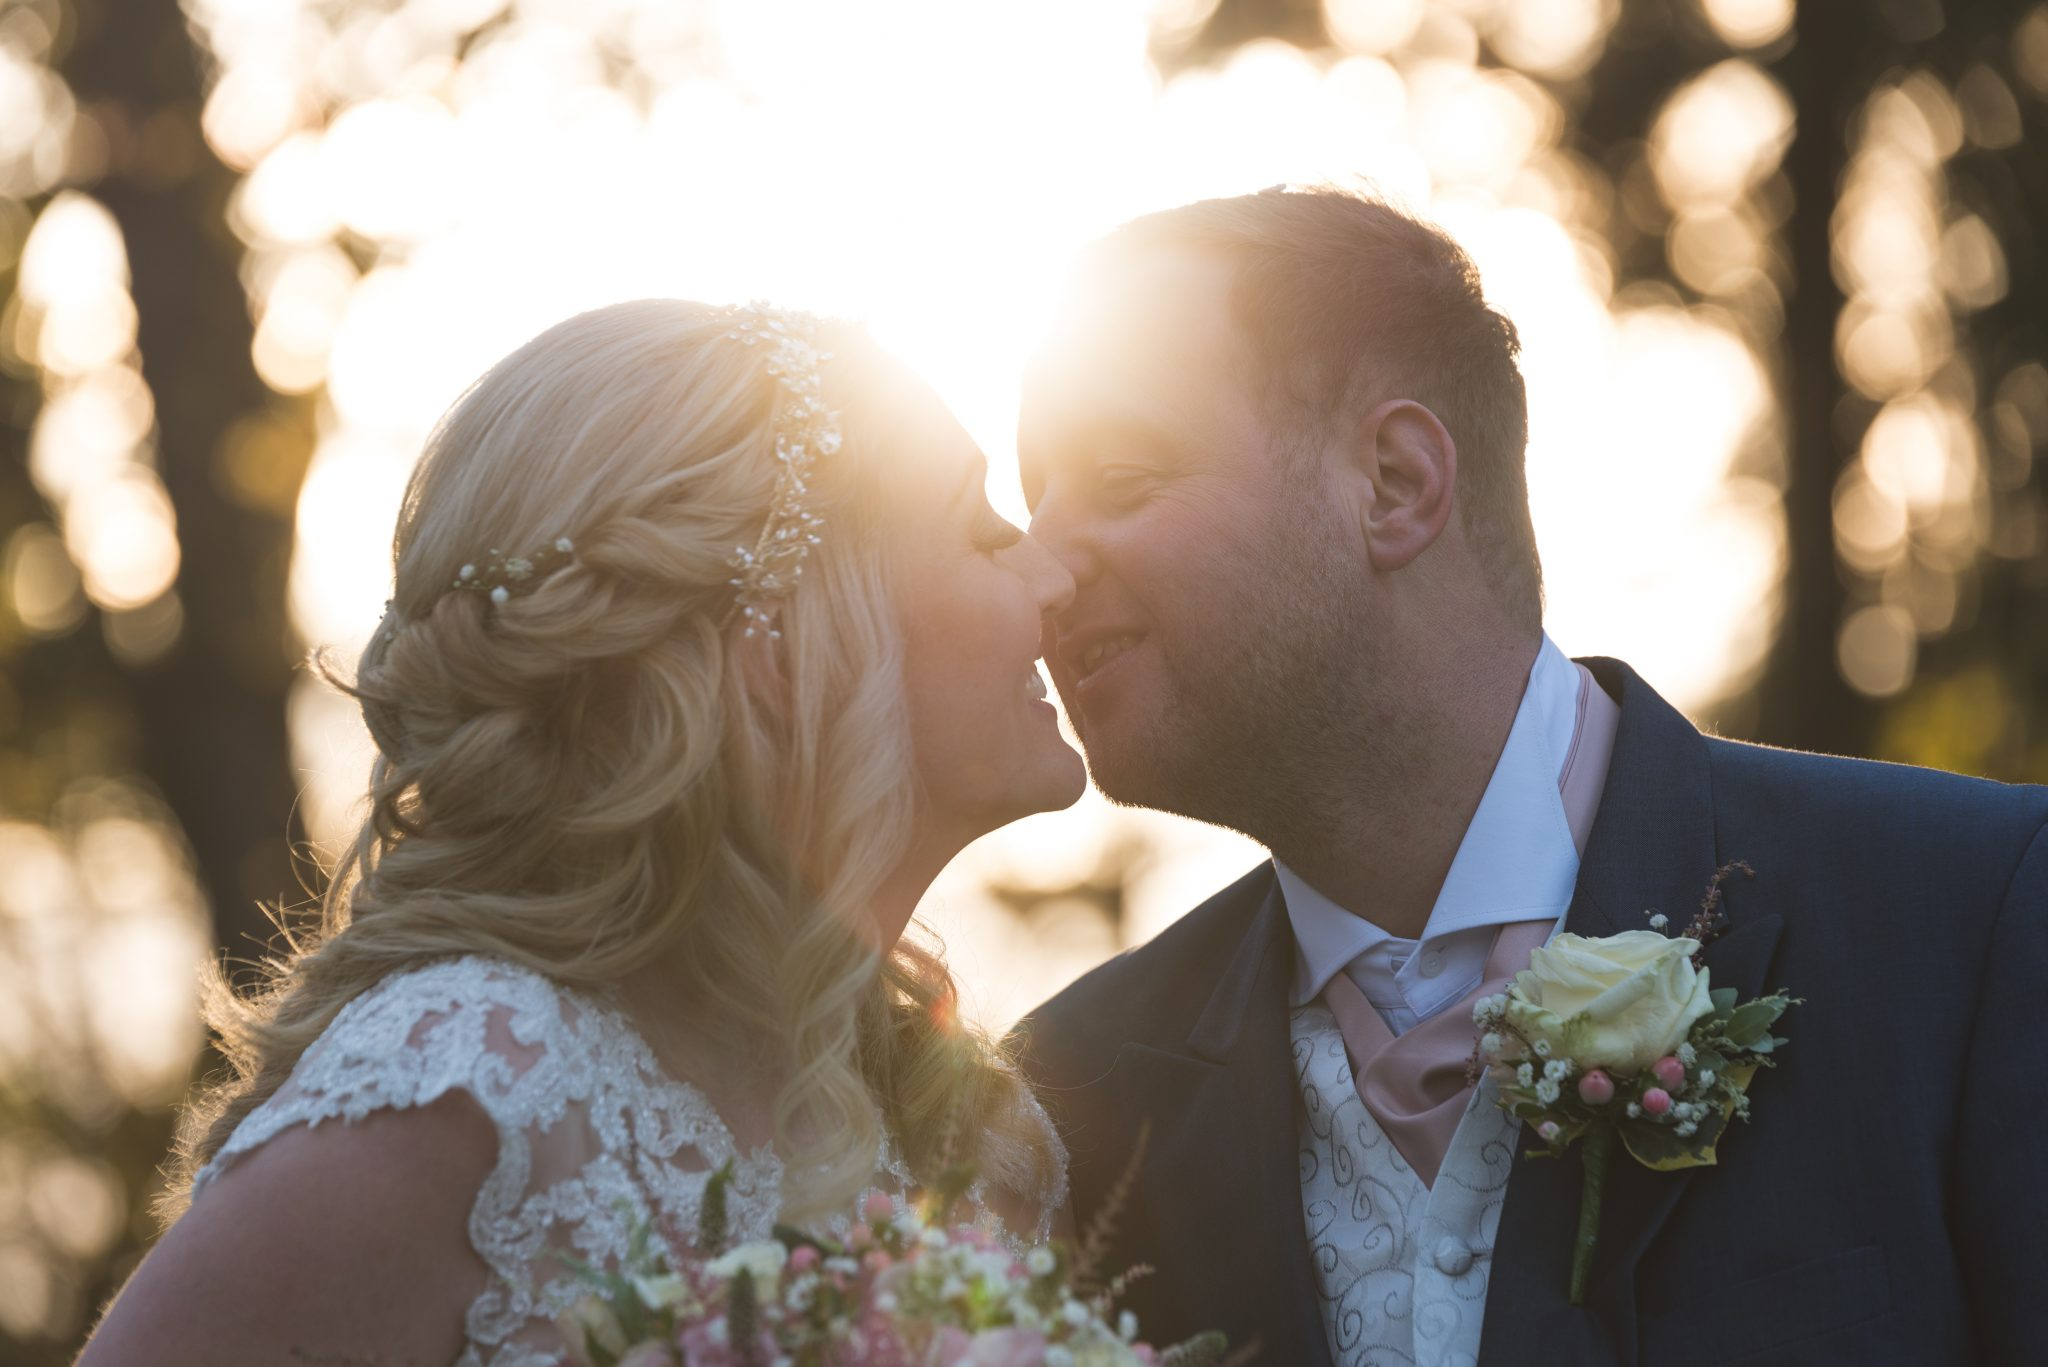 Wedding Photographer Dudley, Kidderminster, Stourbridge - Beautiful, Relaxed Wedding Photography